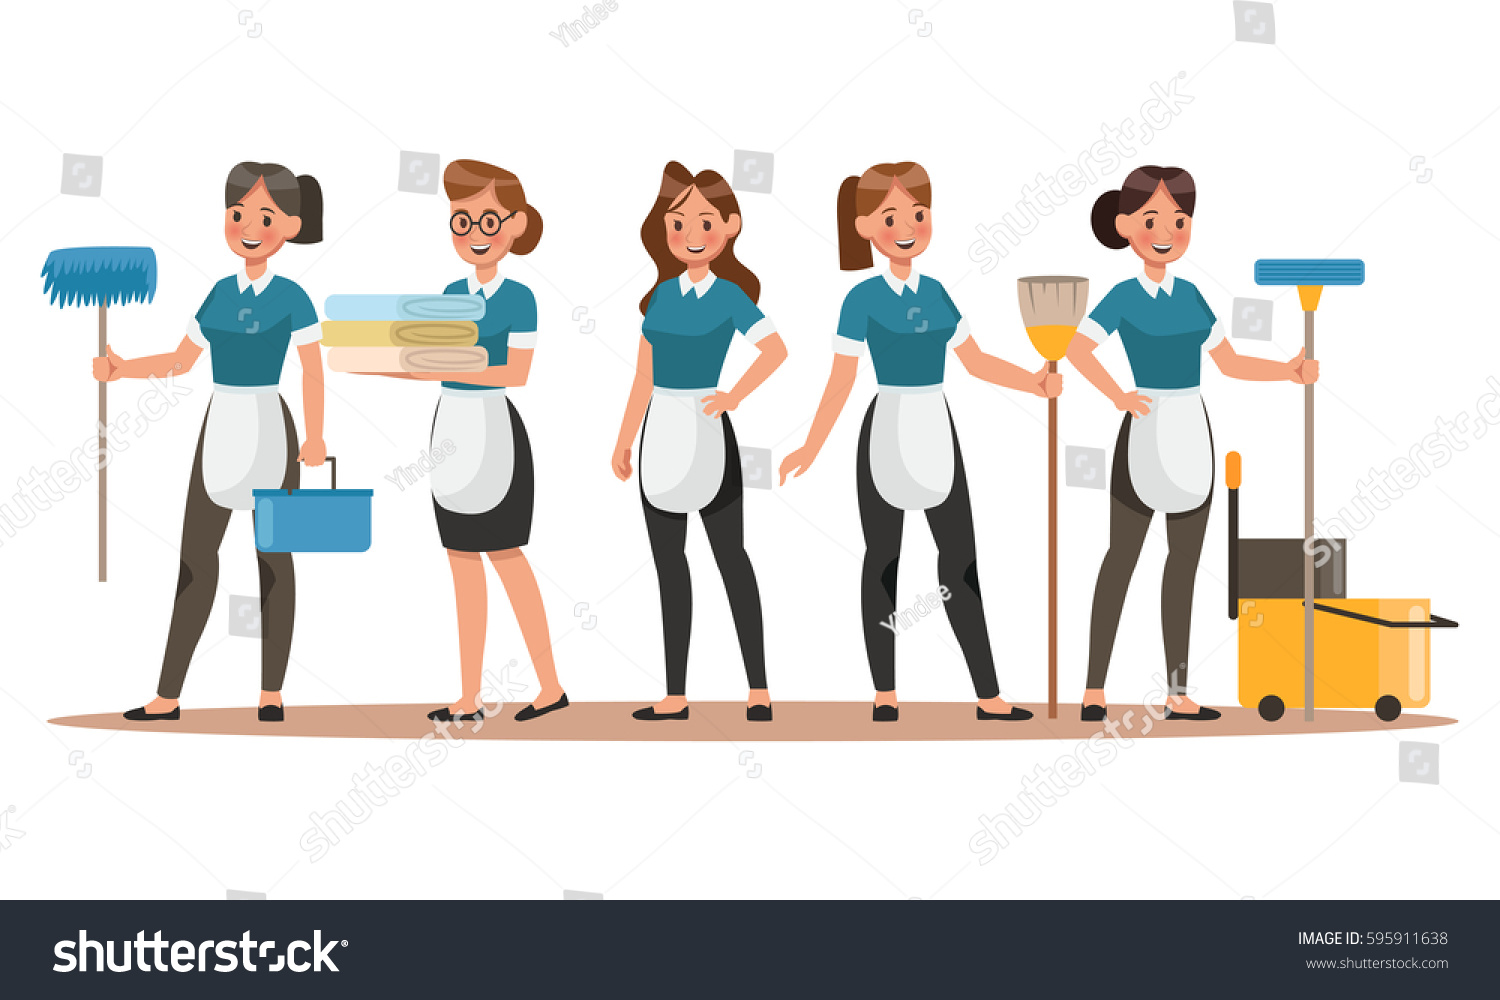 Cleaning staff characters design happy cleaning stock vector 2018 cleaning staff characters design happy cleaning cleaning company vector concept design thecheapjerseys Images